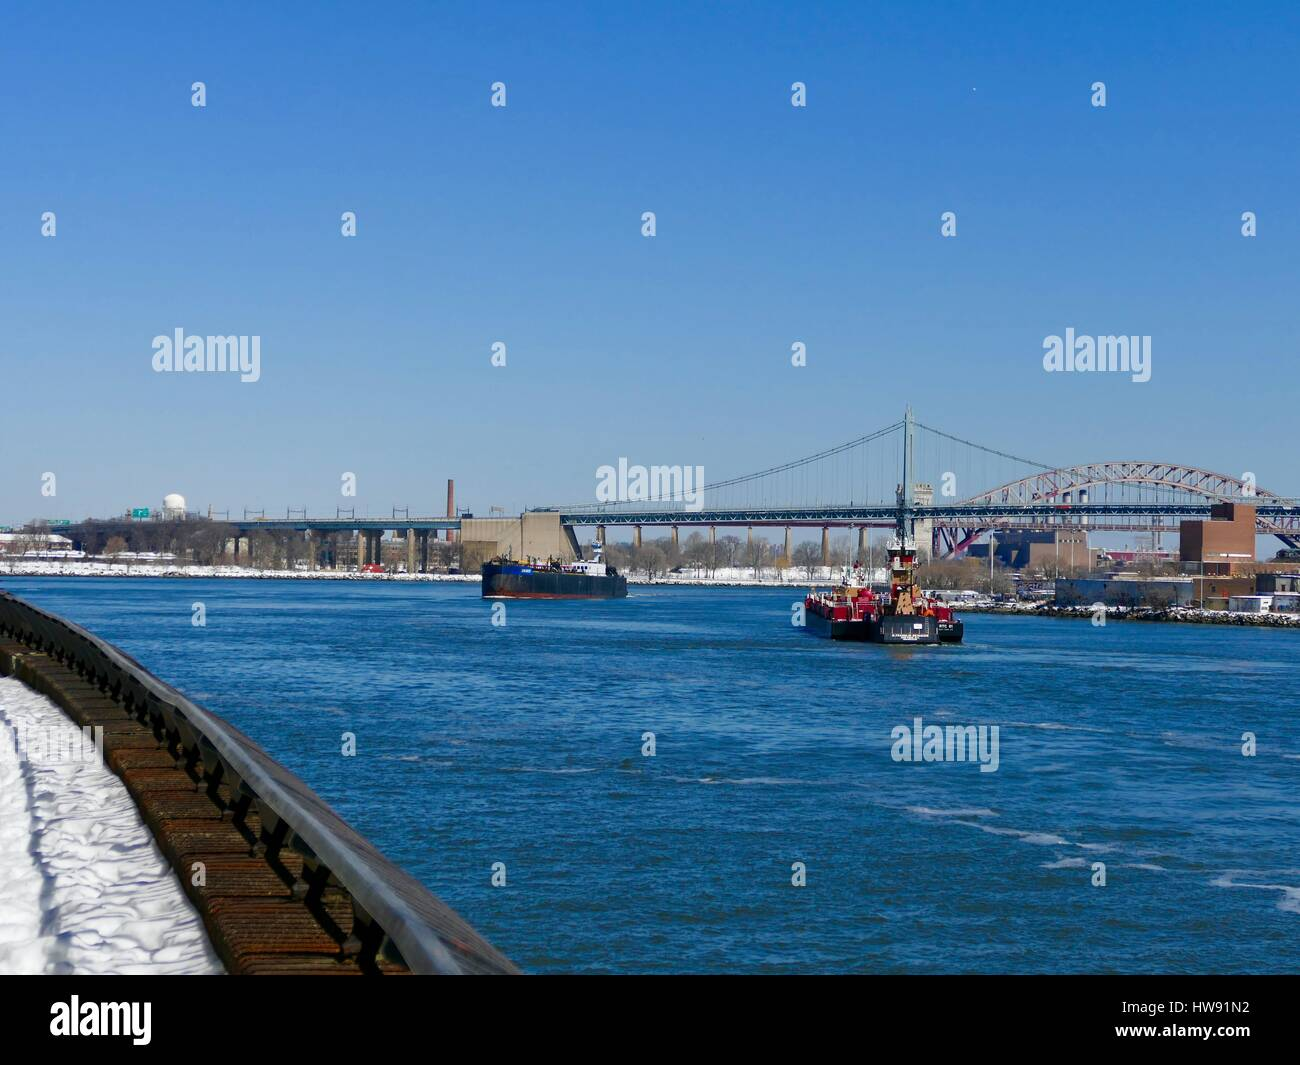 East River commercial boat traffic with RFK bridge in background. New York City, New York, USA - Stock Image